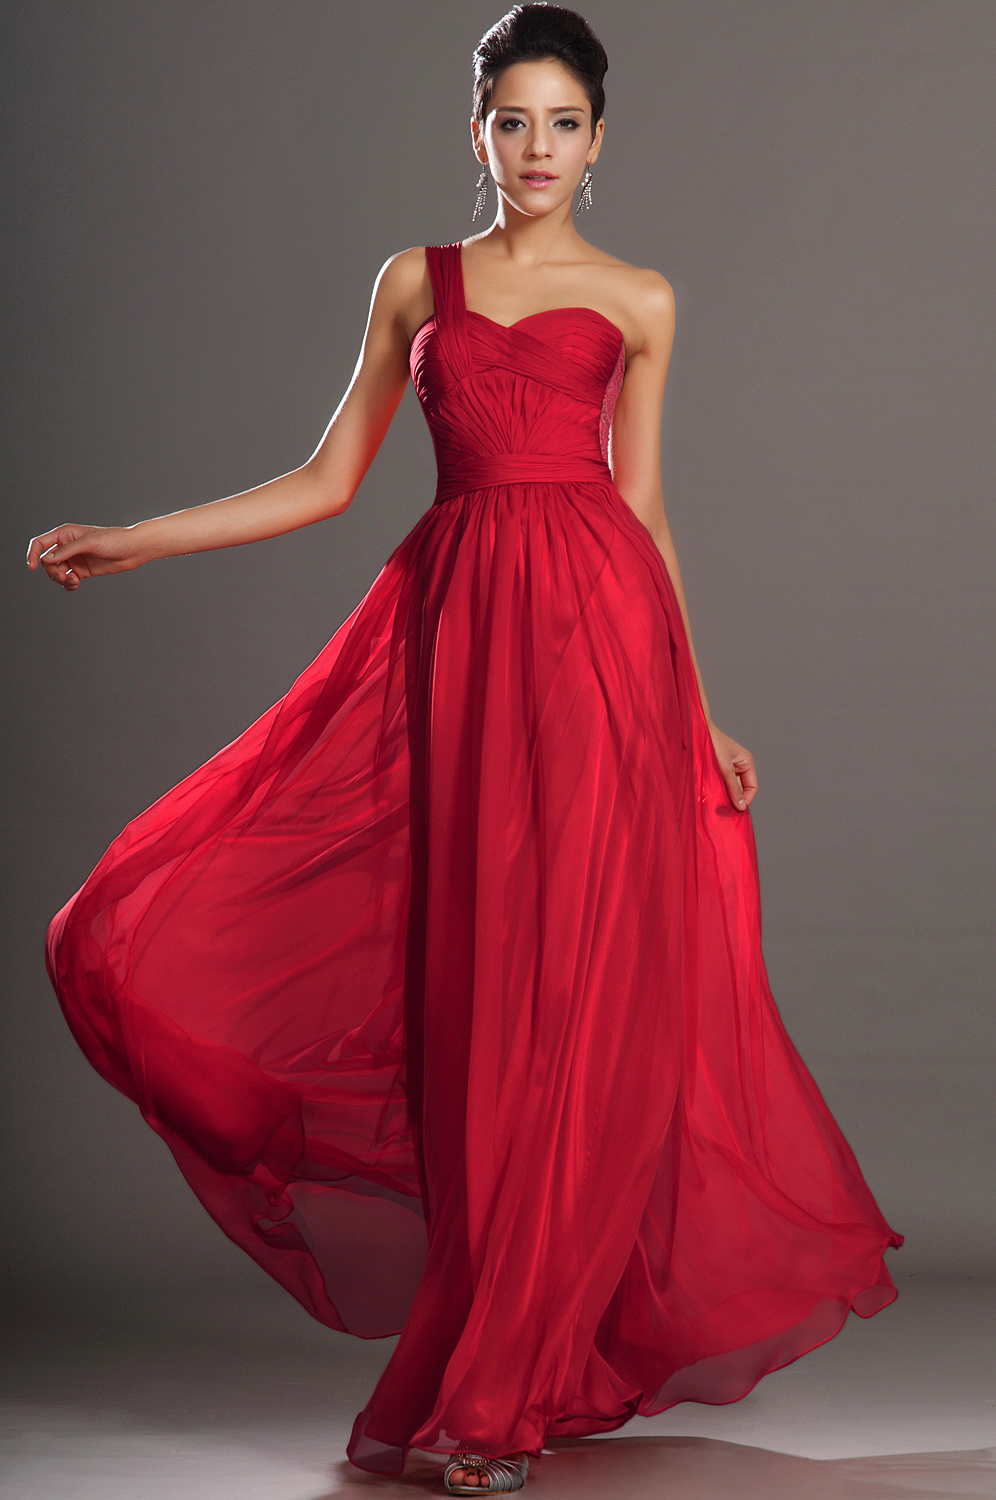 2013 new arrival gorgeous one shoulder evening dress under 100